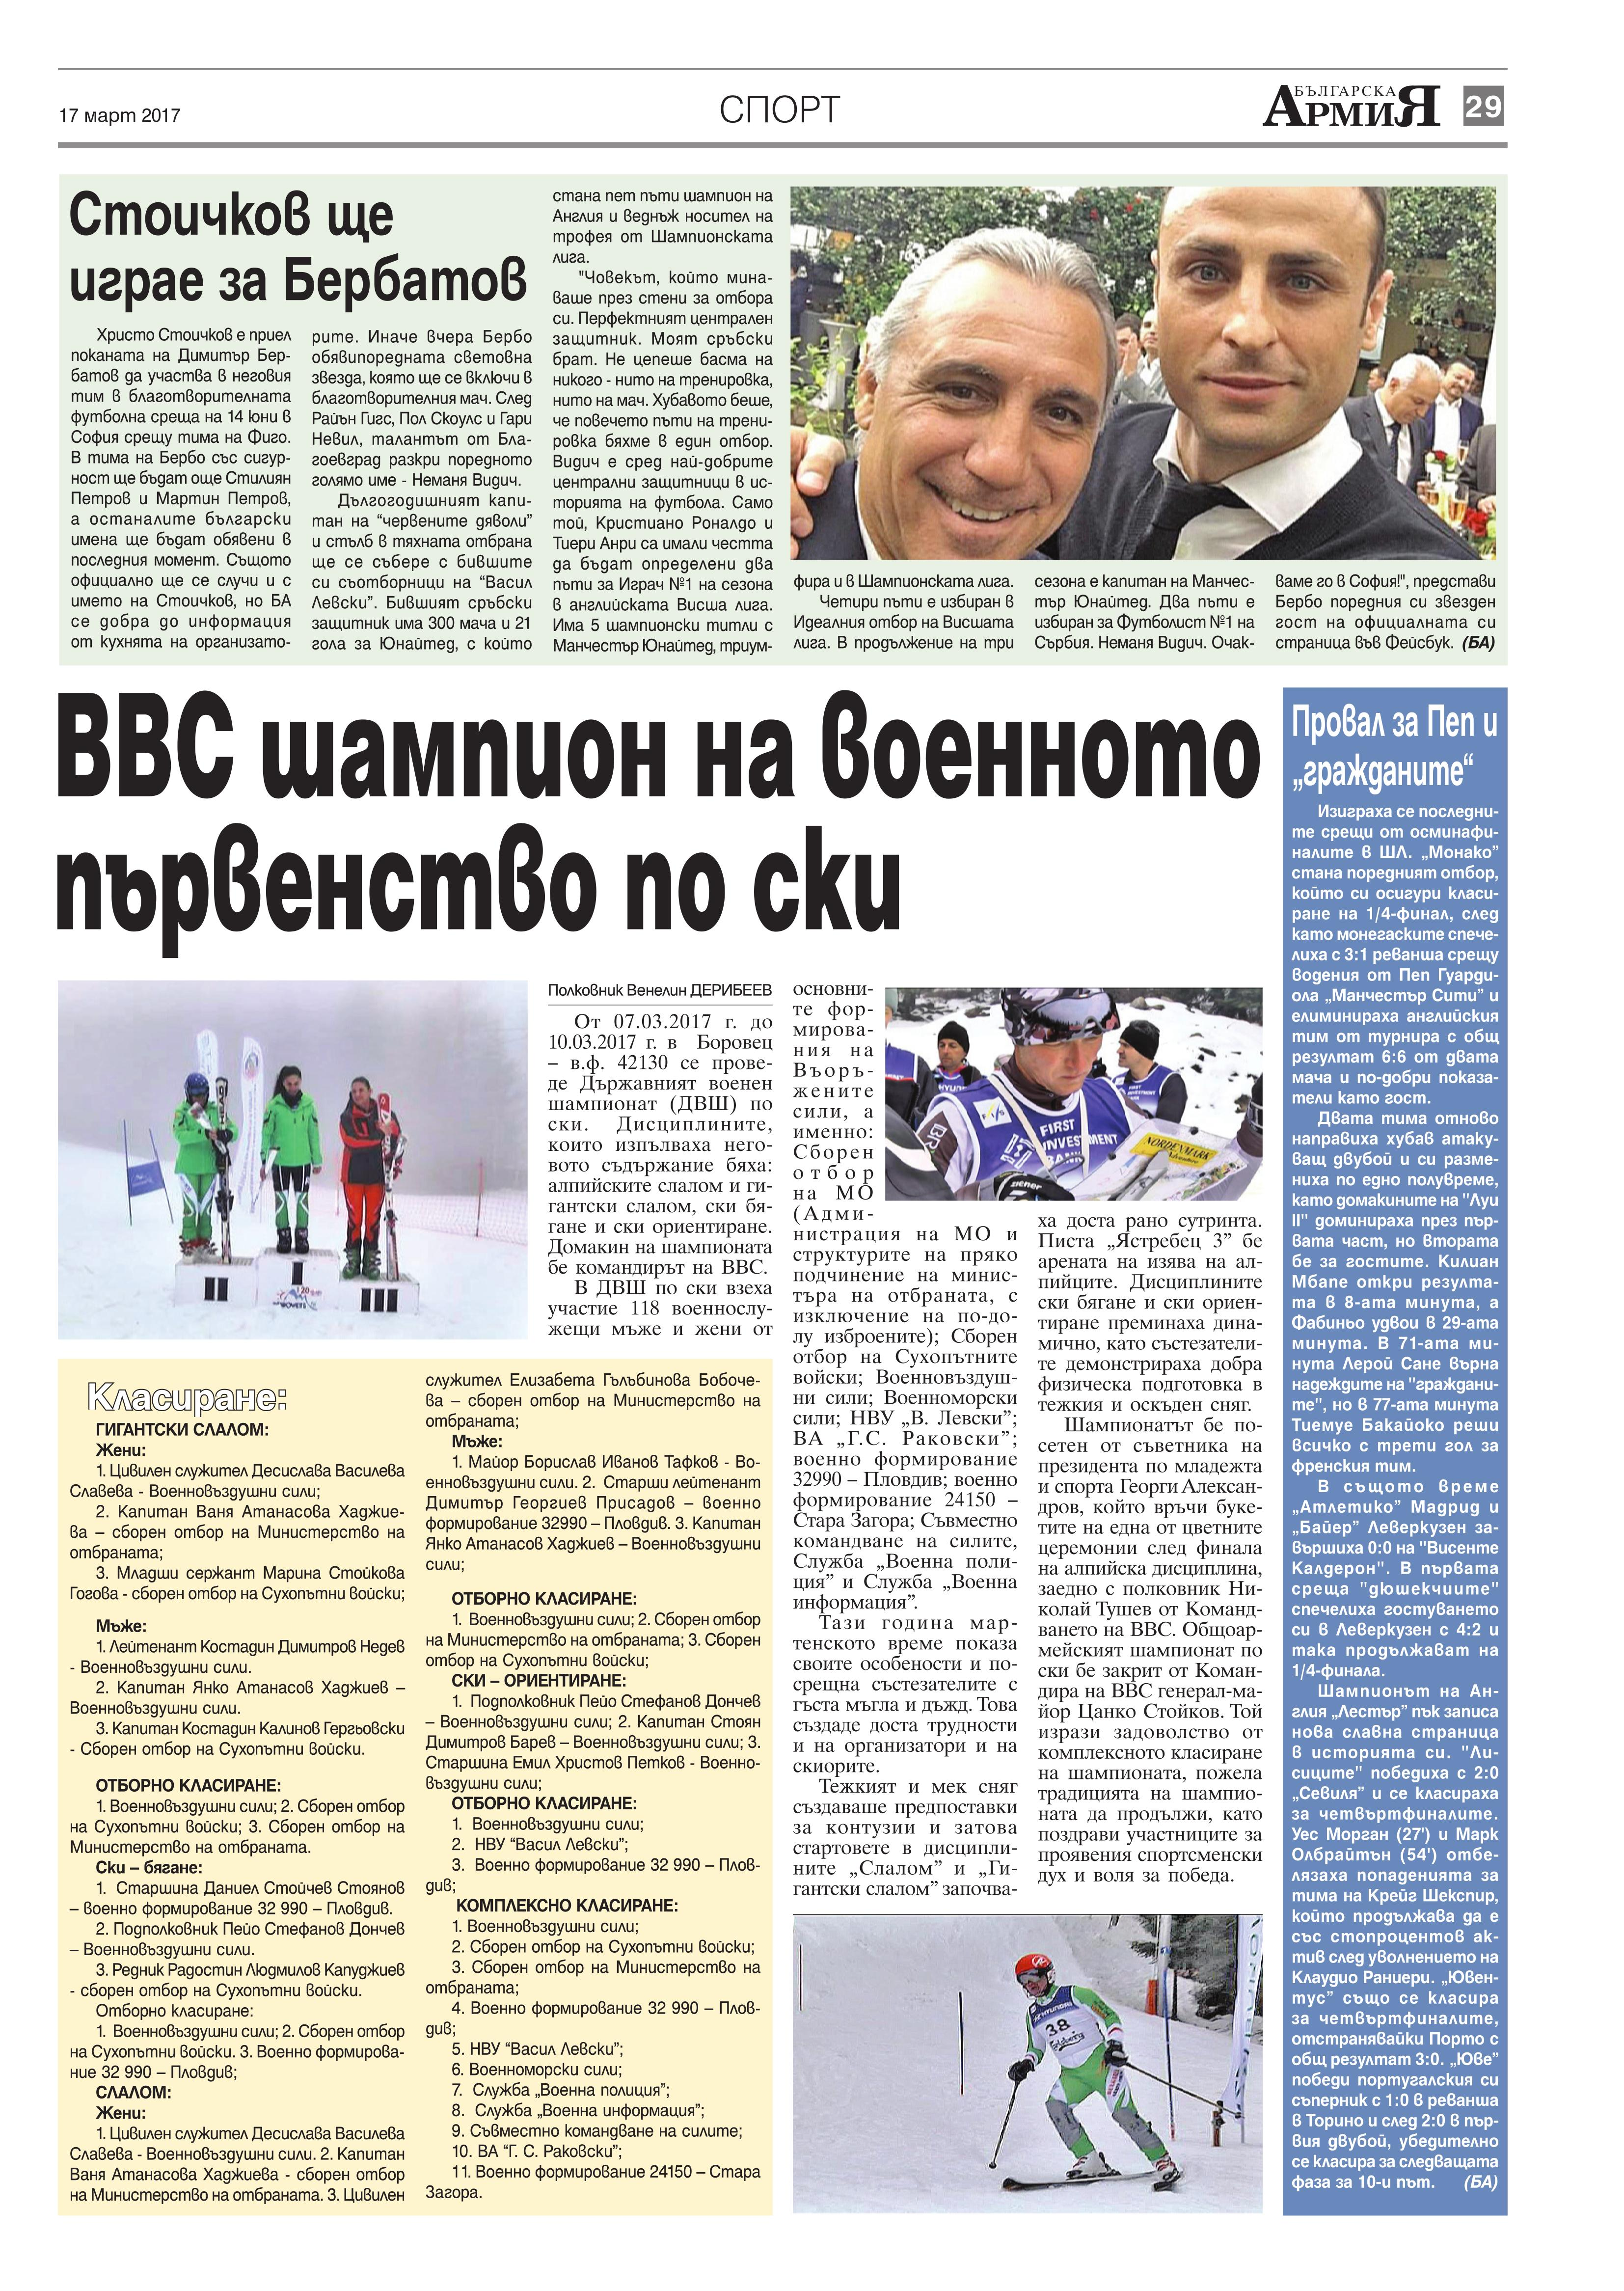 https://www.armymedia.bg/wp-content/uploads/2015/06/29.page1_-16.jpg